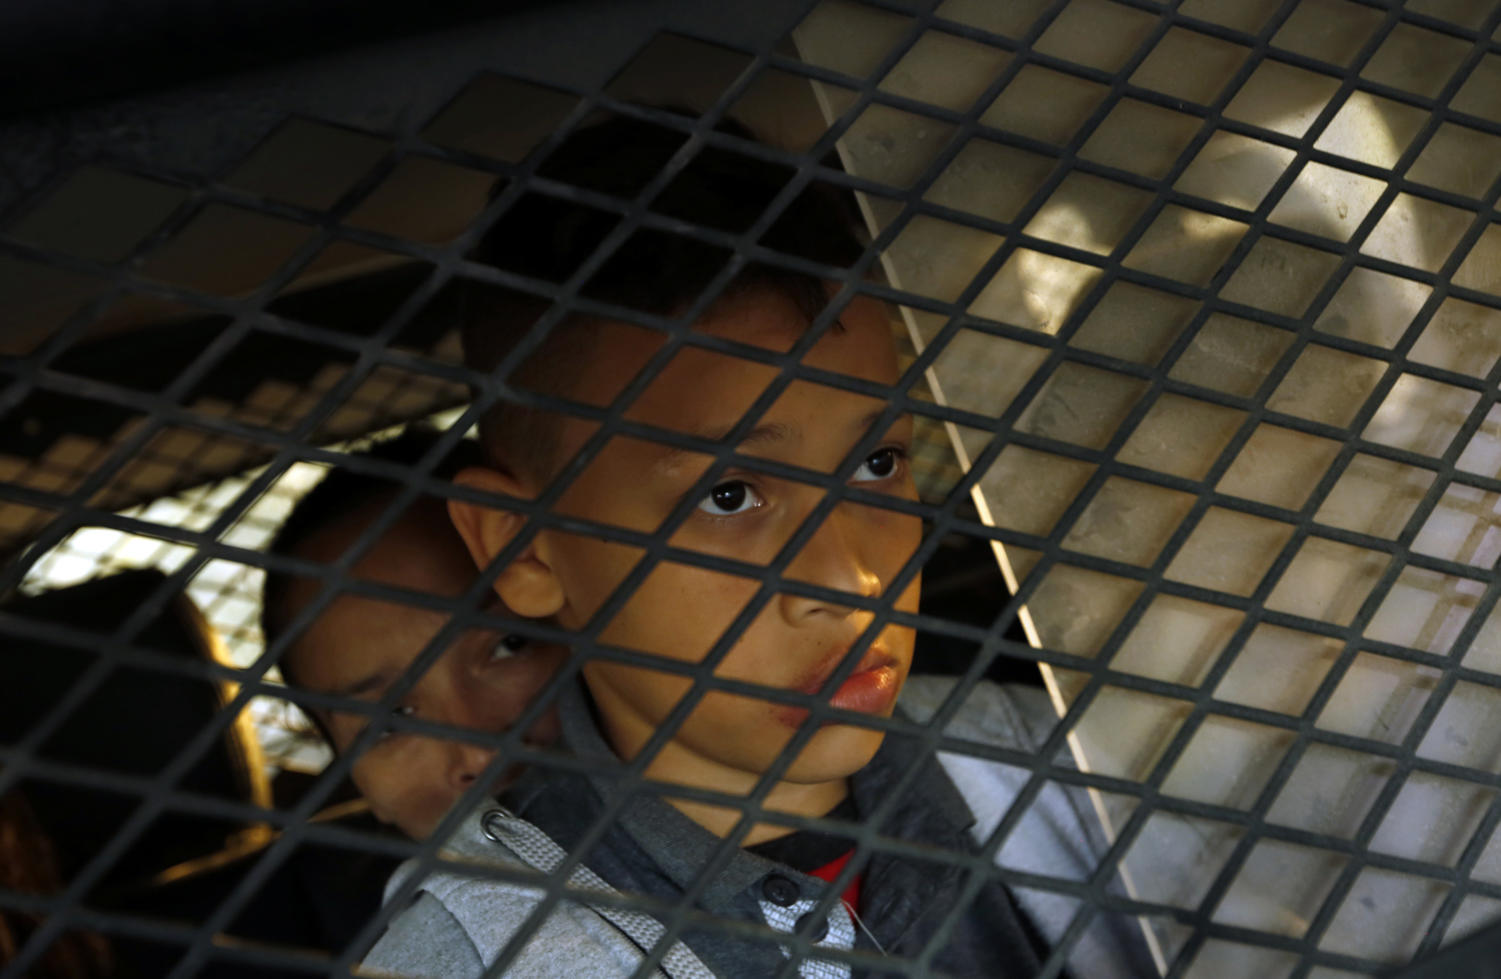 A young boy is detained along with his family members in Texas. (Carolyn Cole/Los Angeles Times/TNS)